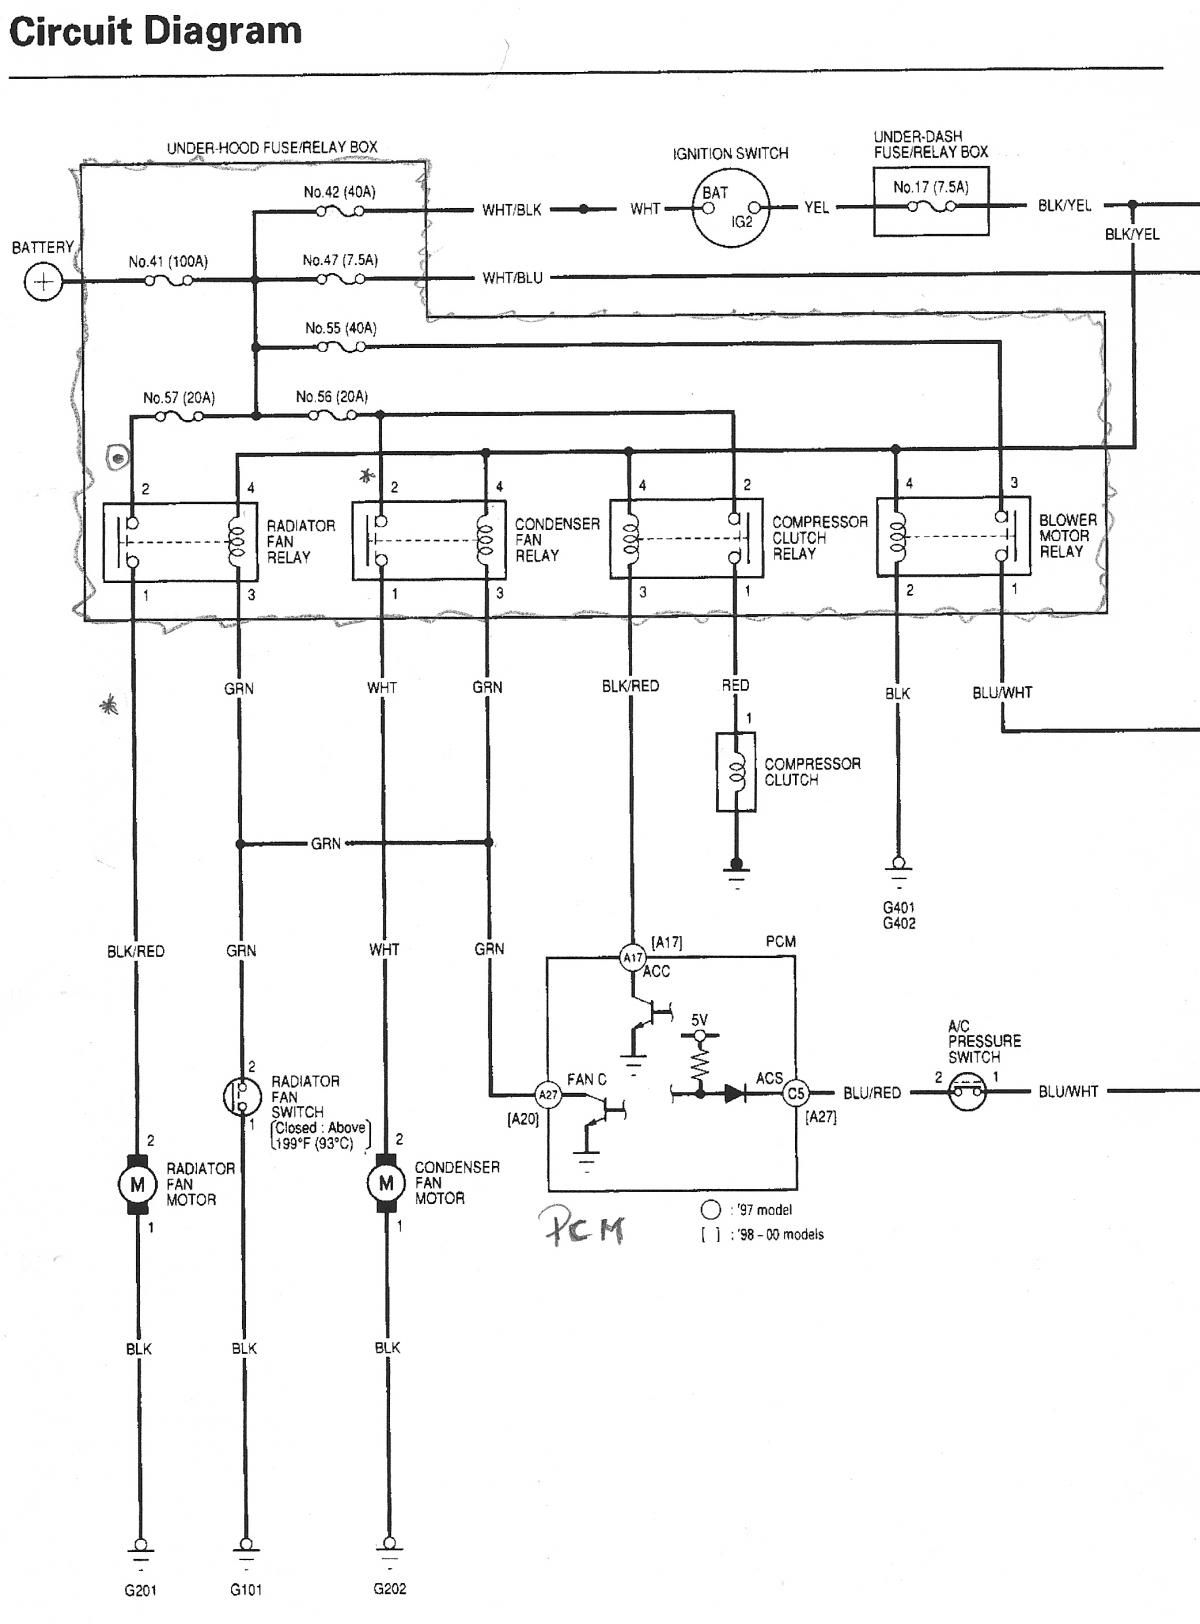 honda crv ecu wiring diagram structures of photosynthesis fuse box location free diagrams